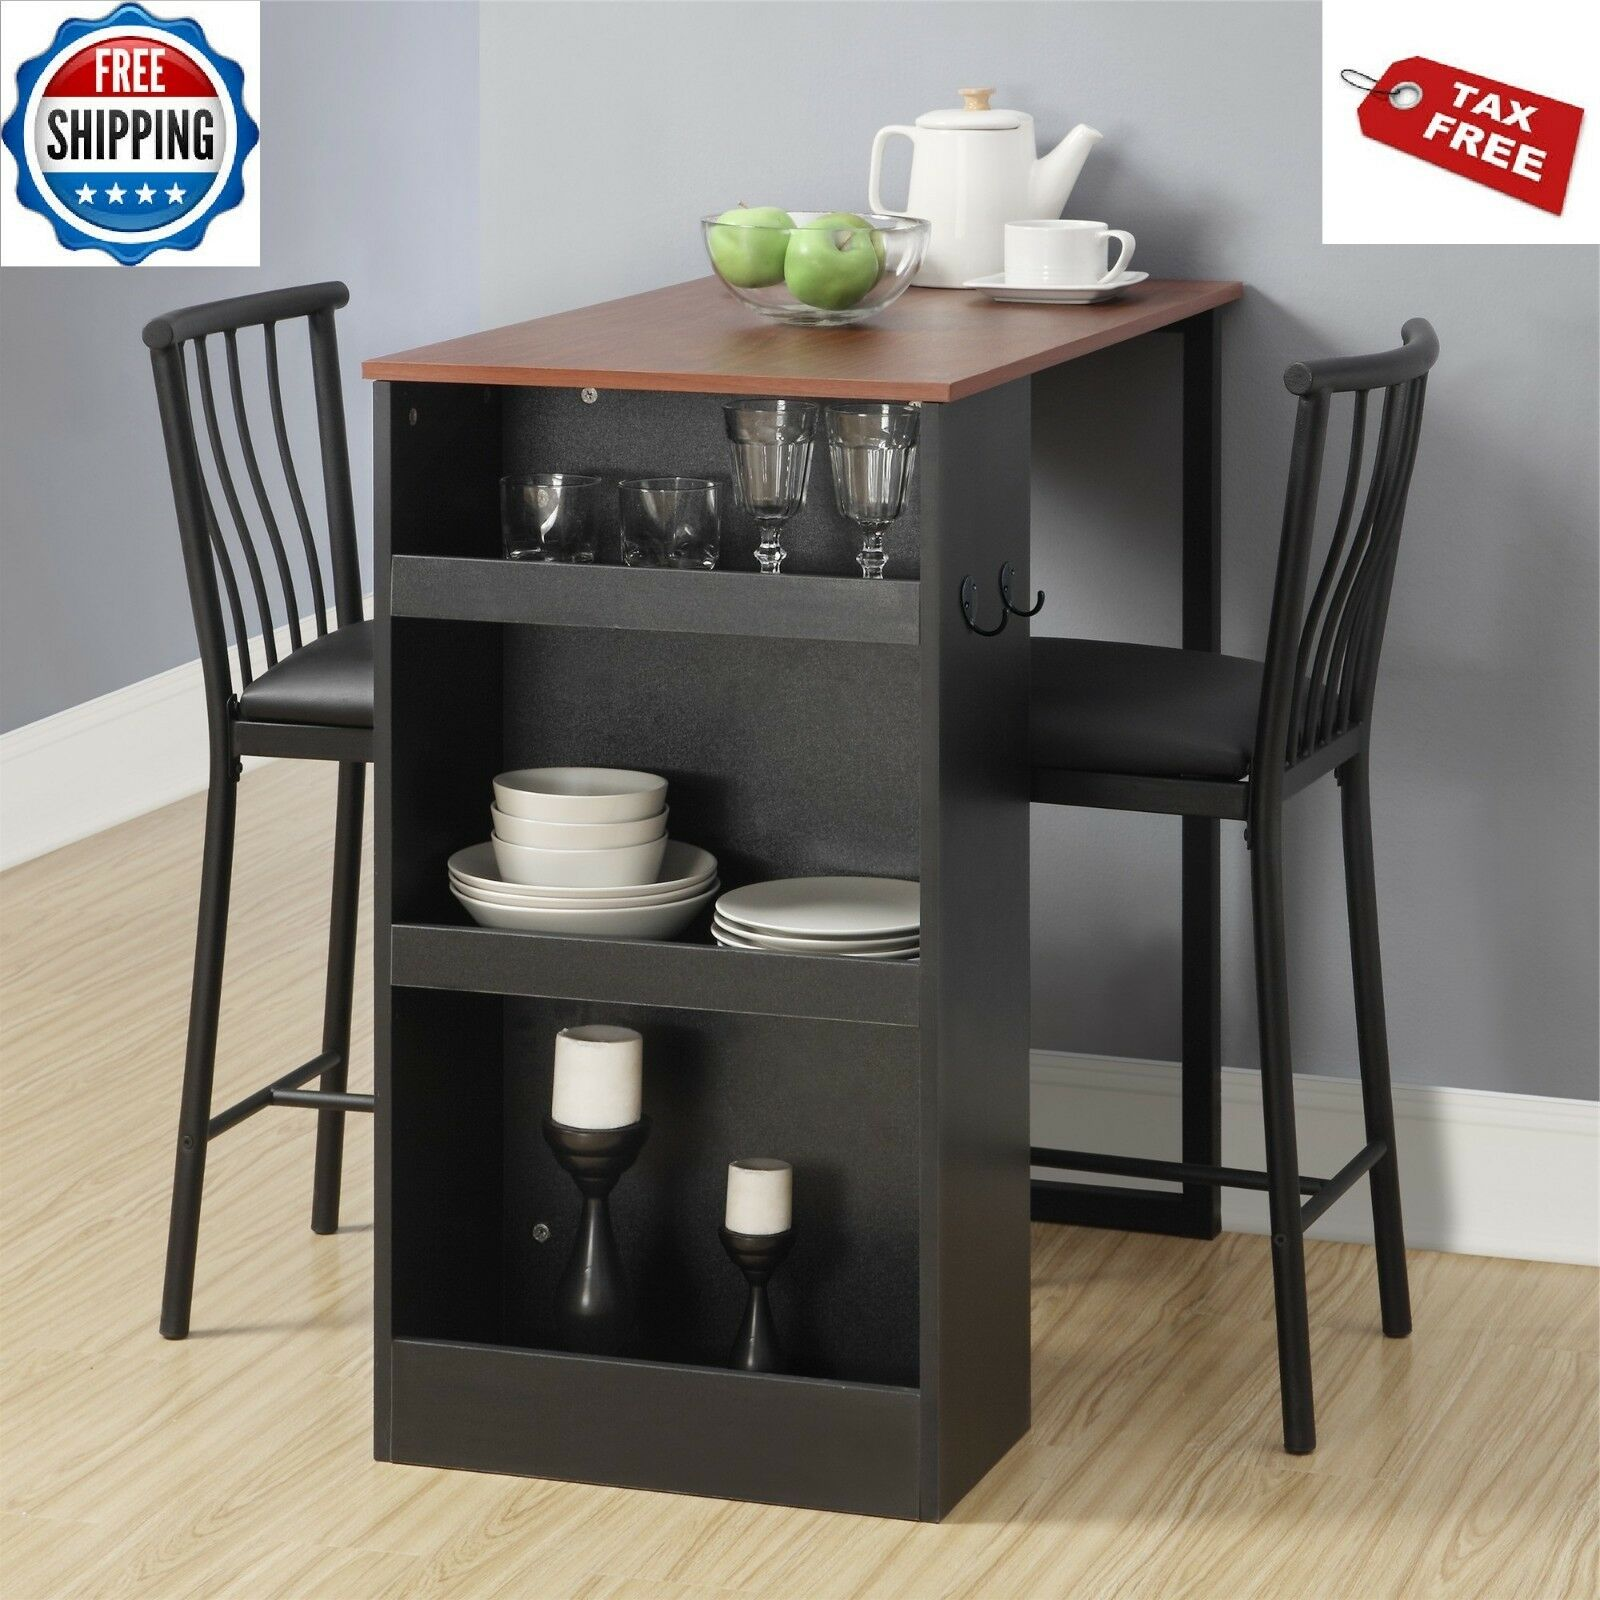 Pub Dining Table Set Space Saver Counter Height Kitchen Breakfast Bistro Bar